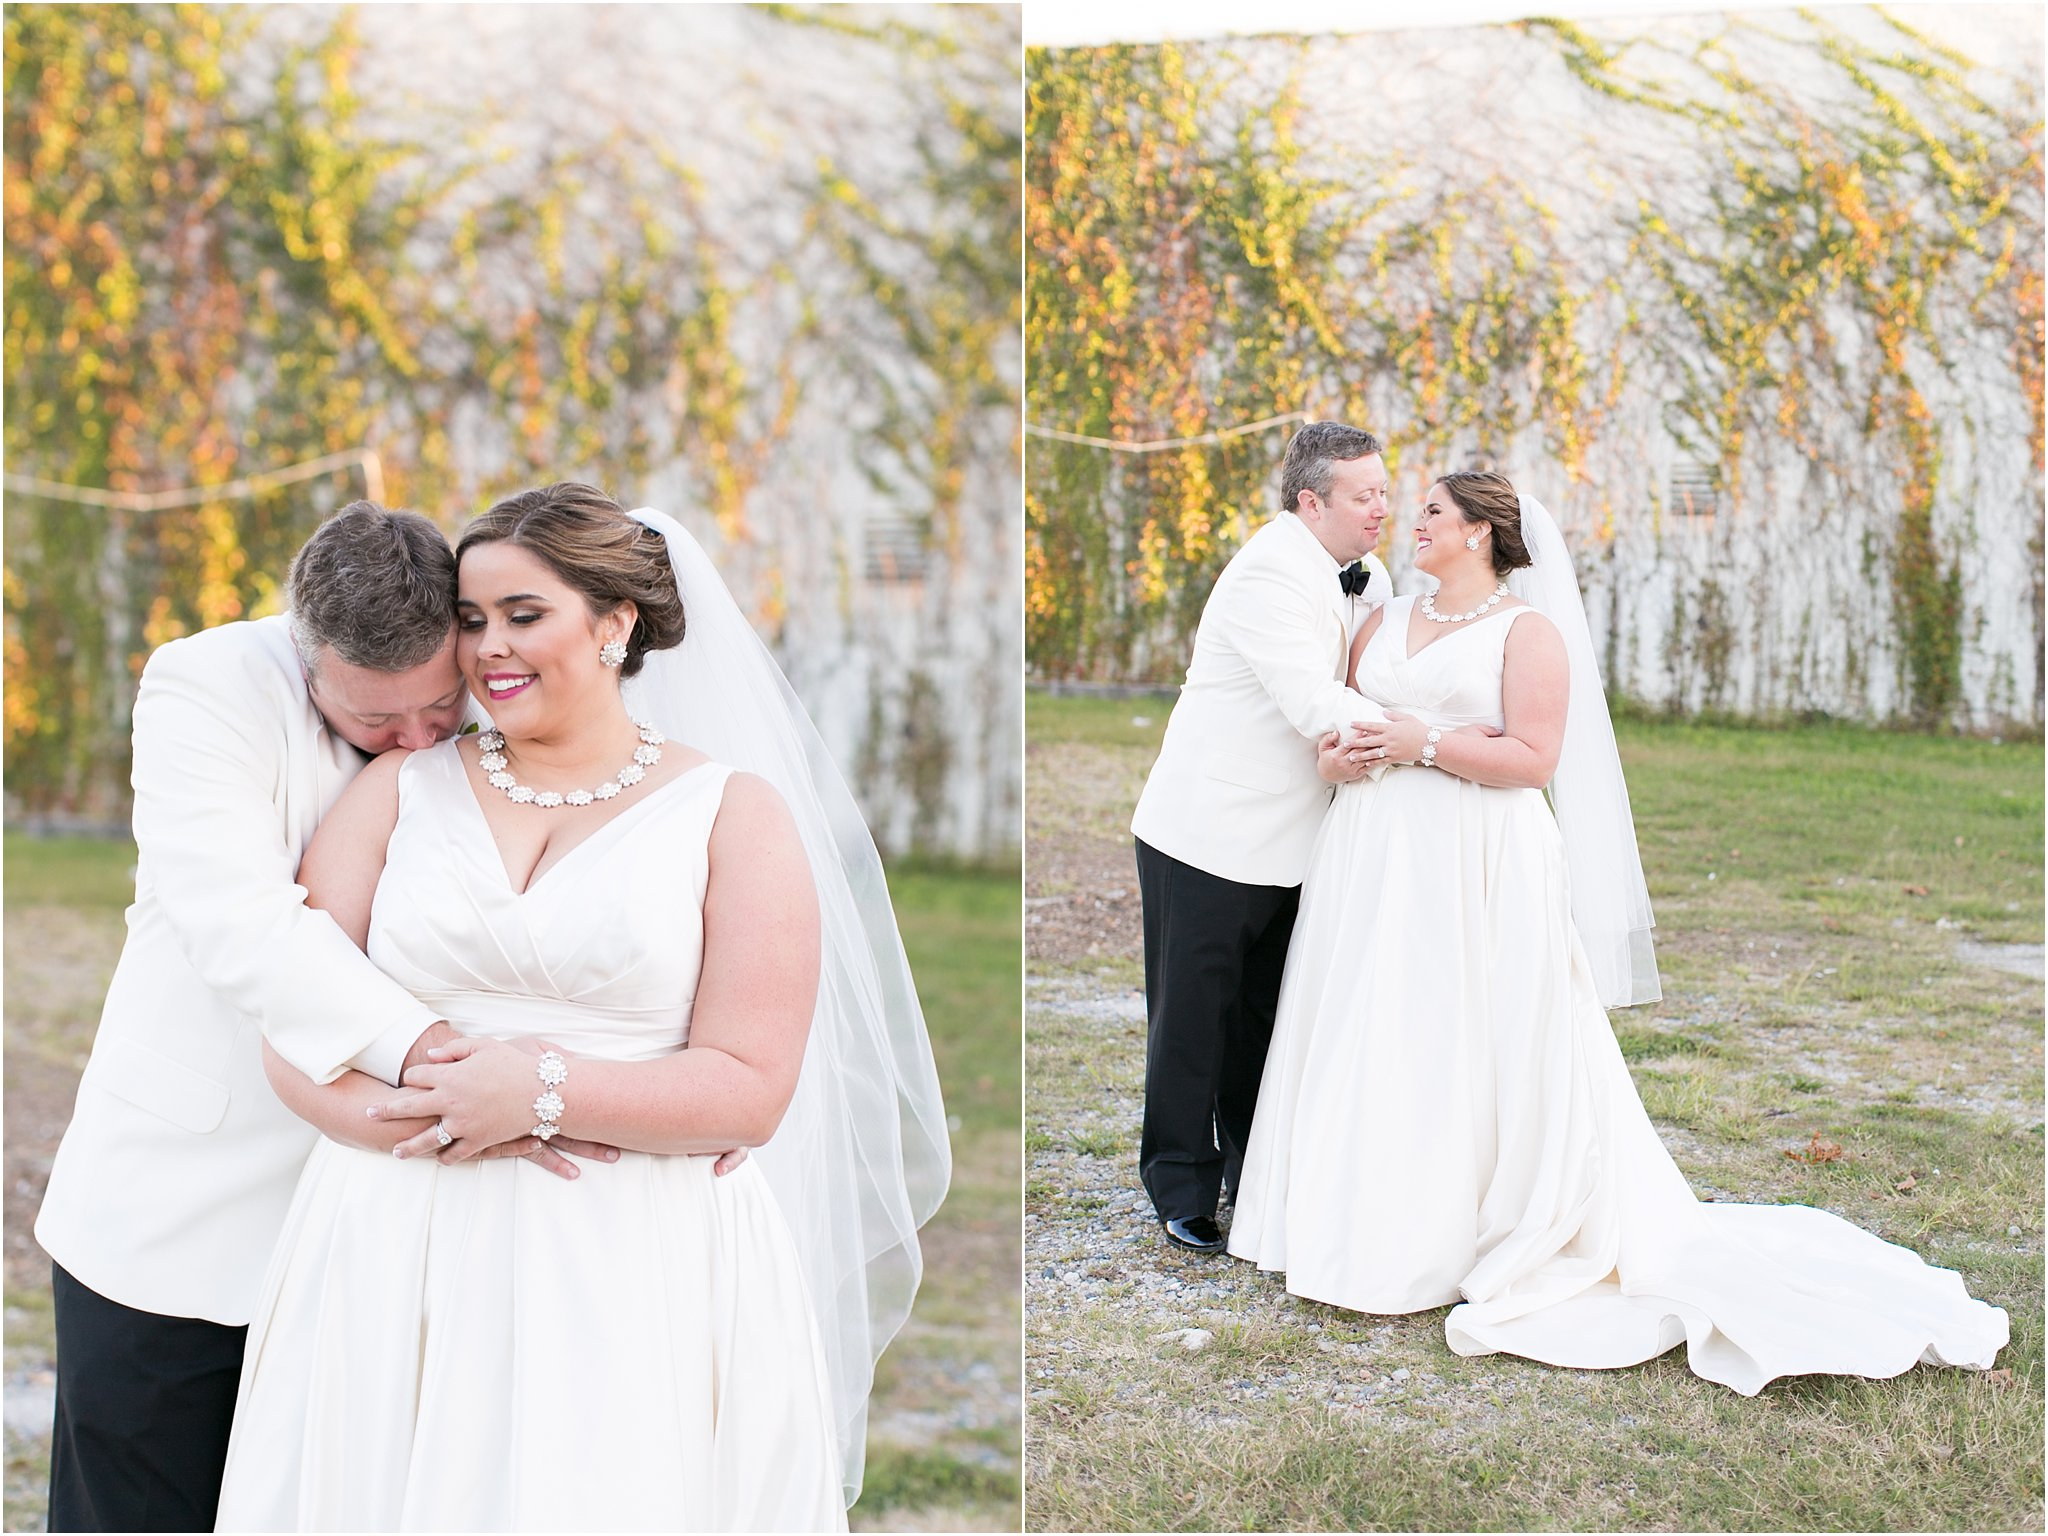 va_jessica_ryan_photography_virginia_wedding_norfolk_harrison_opera_house_norfolk_arts_district_portraits_3818